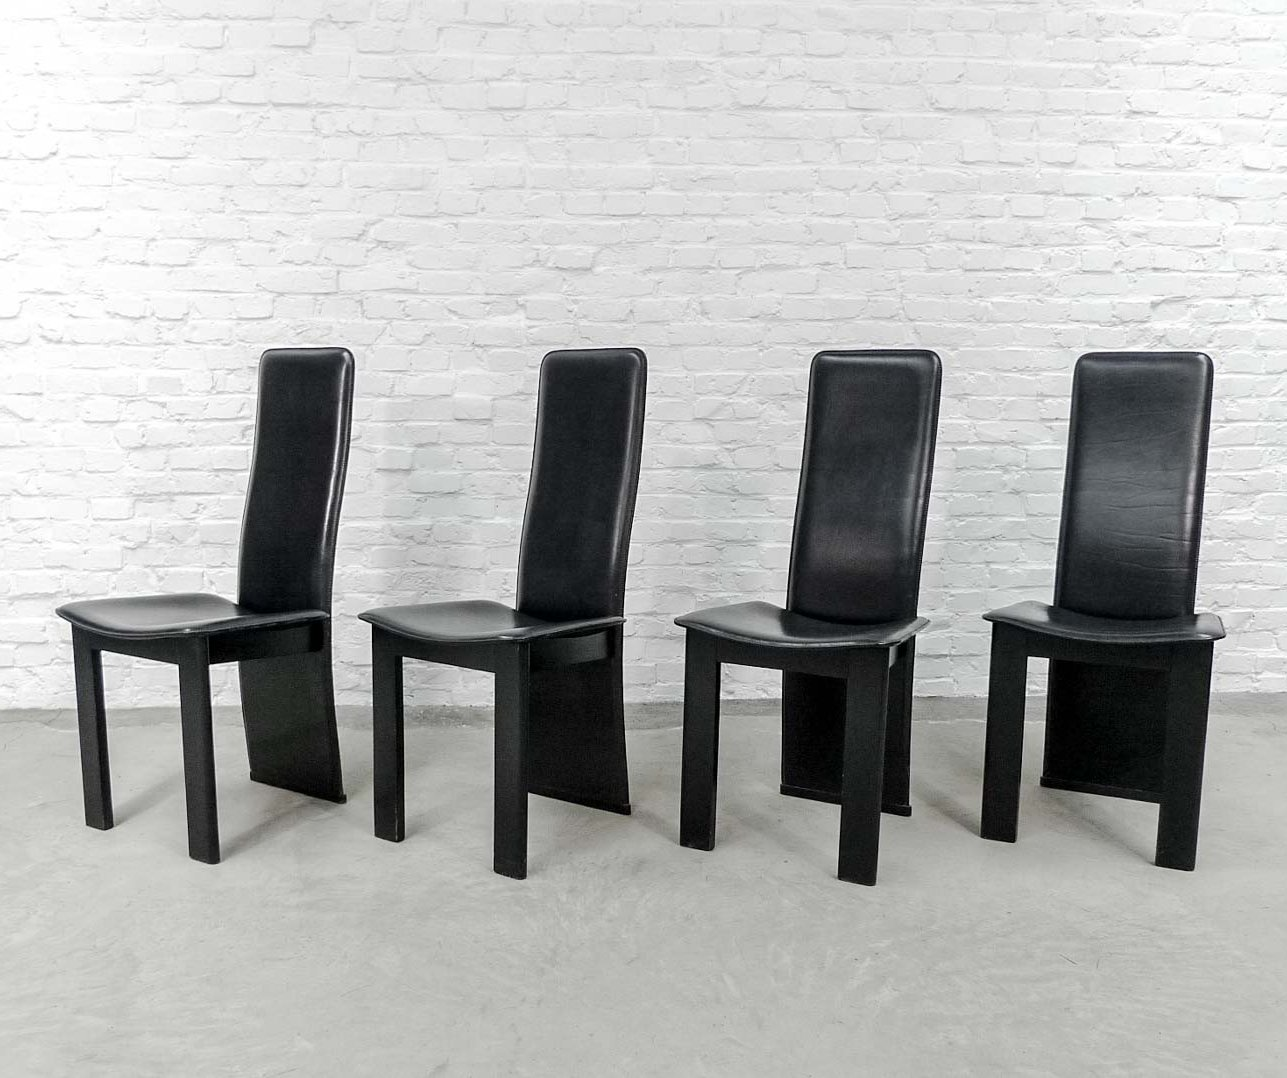 Black Sadle Leather High Back Dining Chairs 1970s 68002